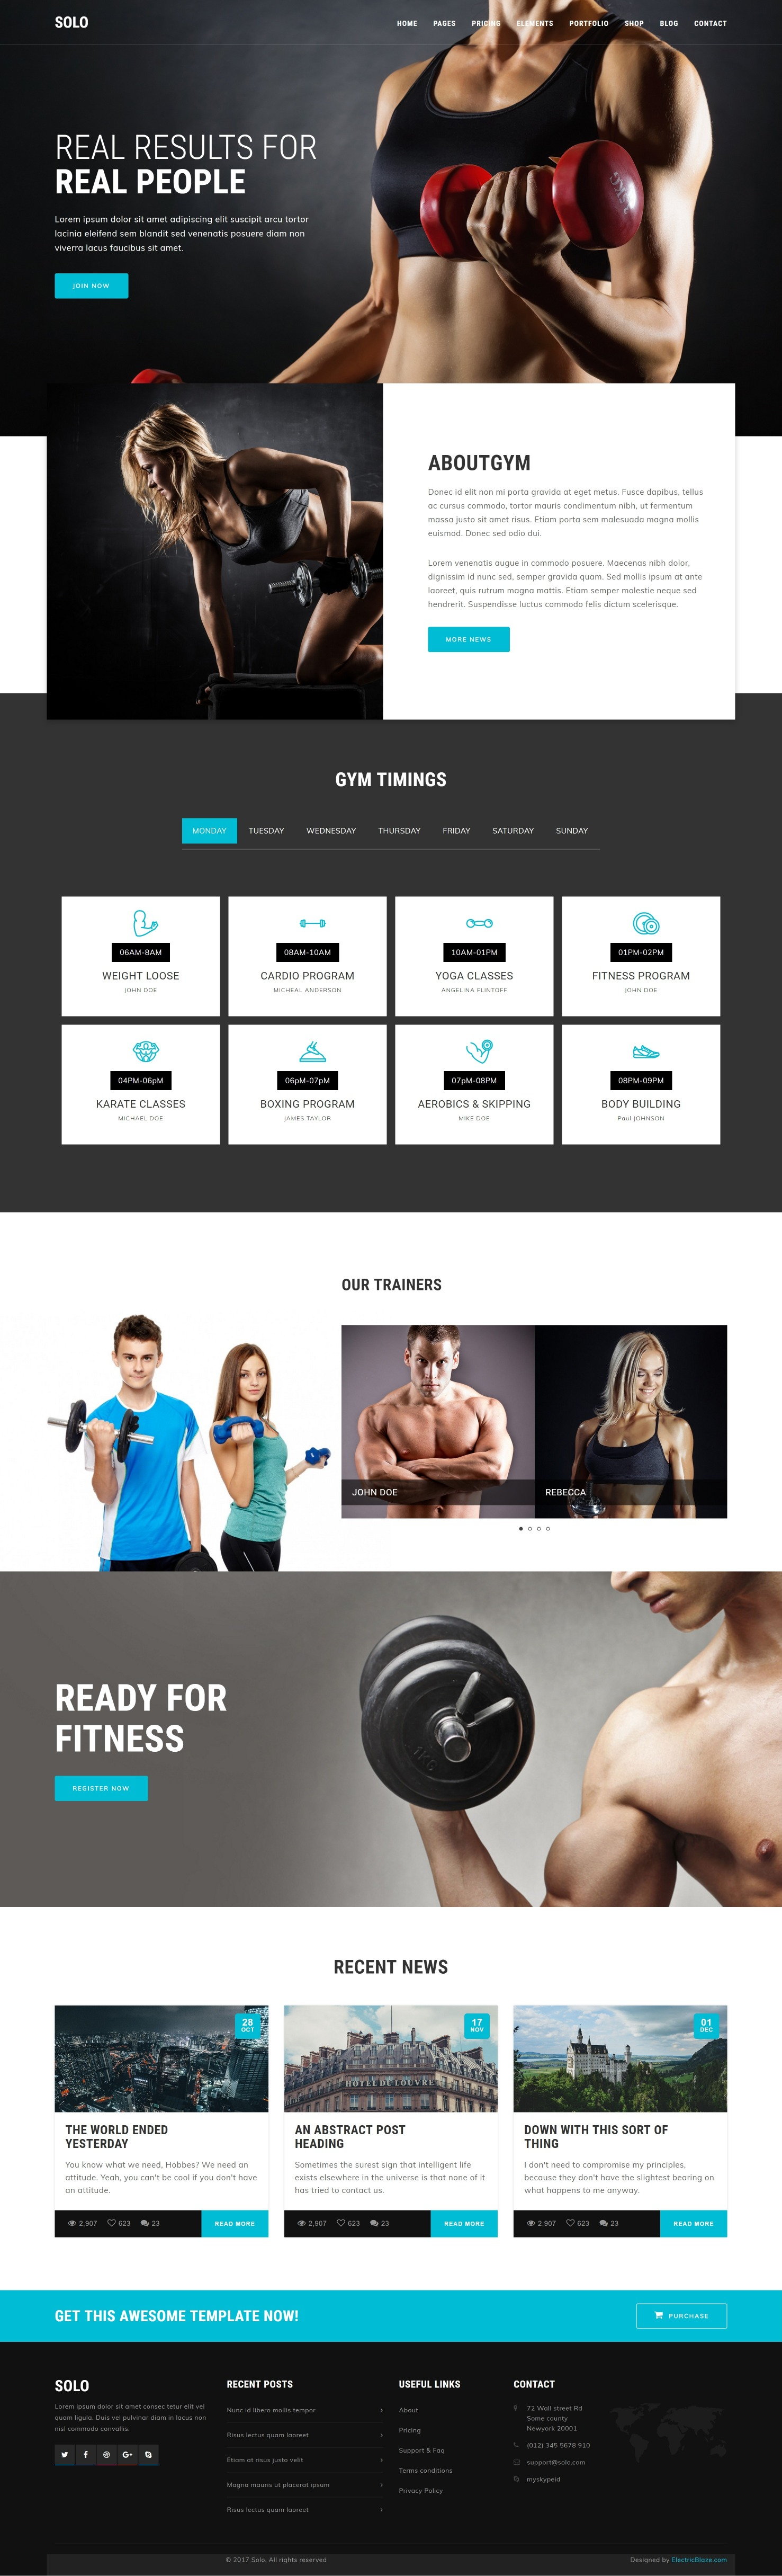 Solo - 103+ Pages HTML Bootstrap Template by ElectricBlaze | ThemeForest